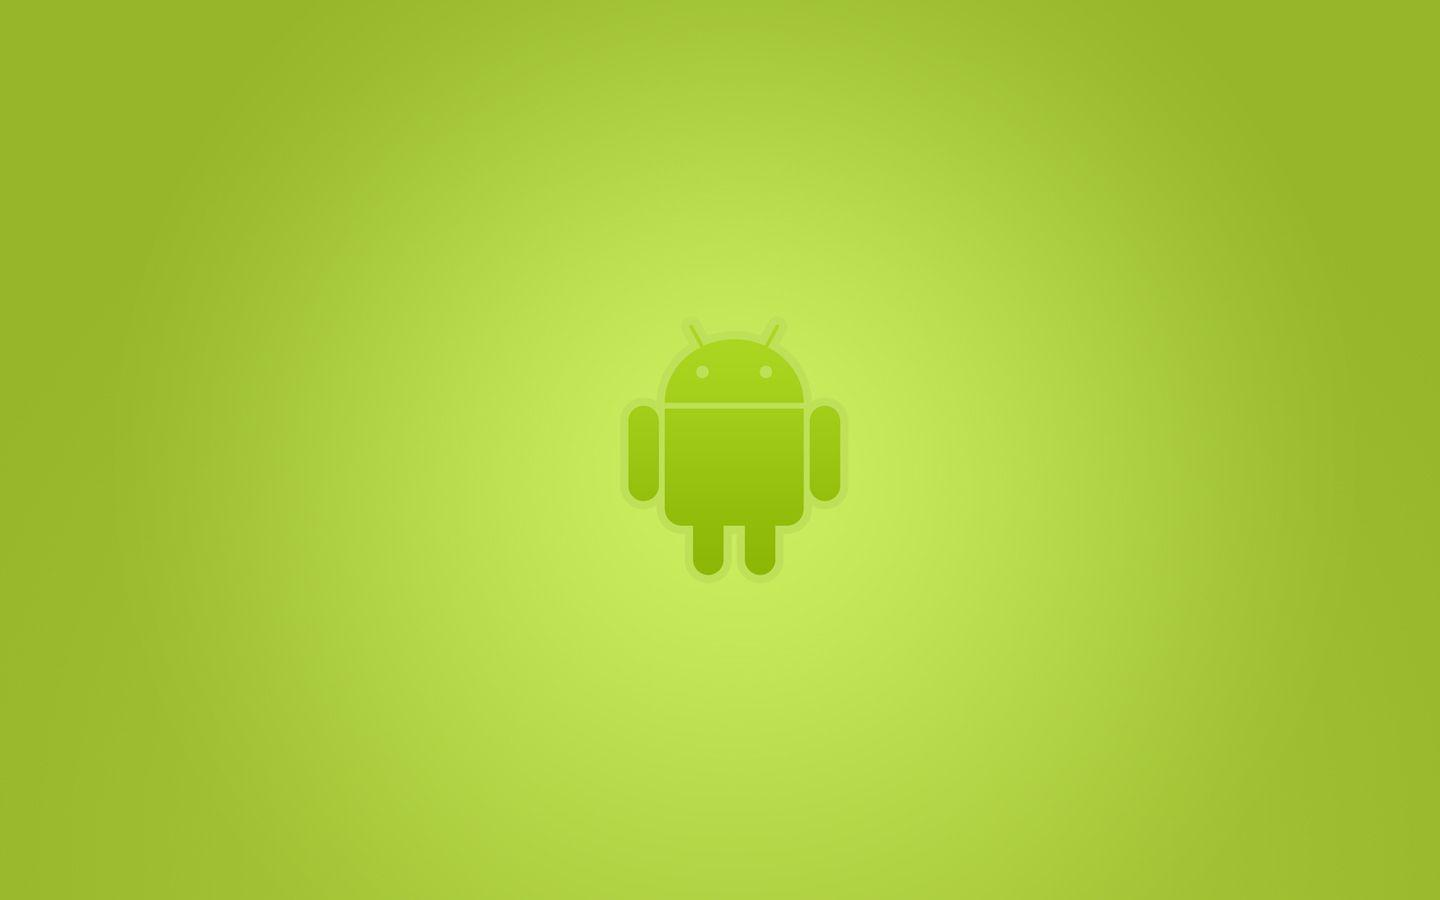 HD Wallpapers for Android